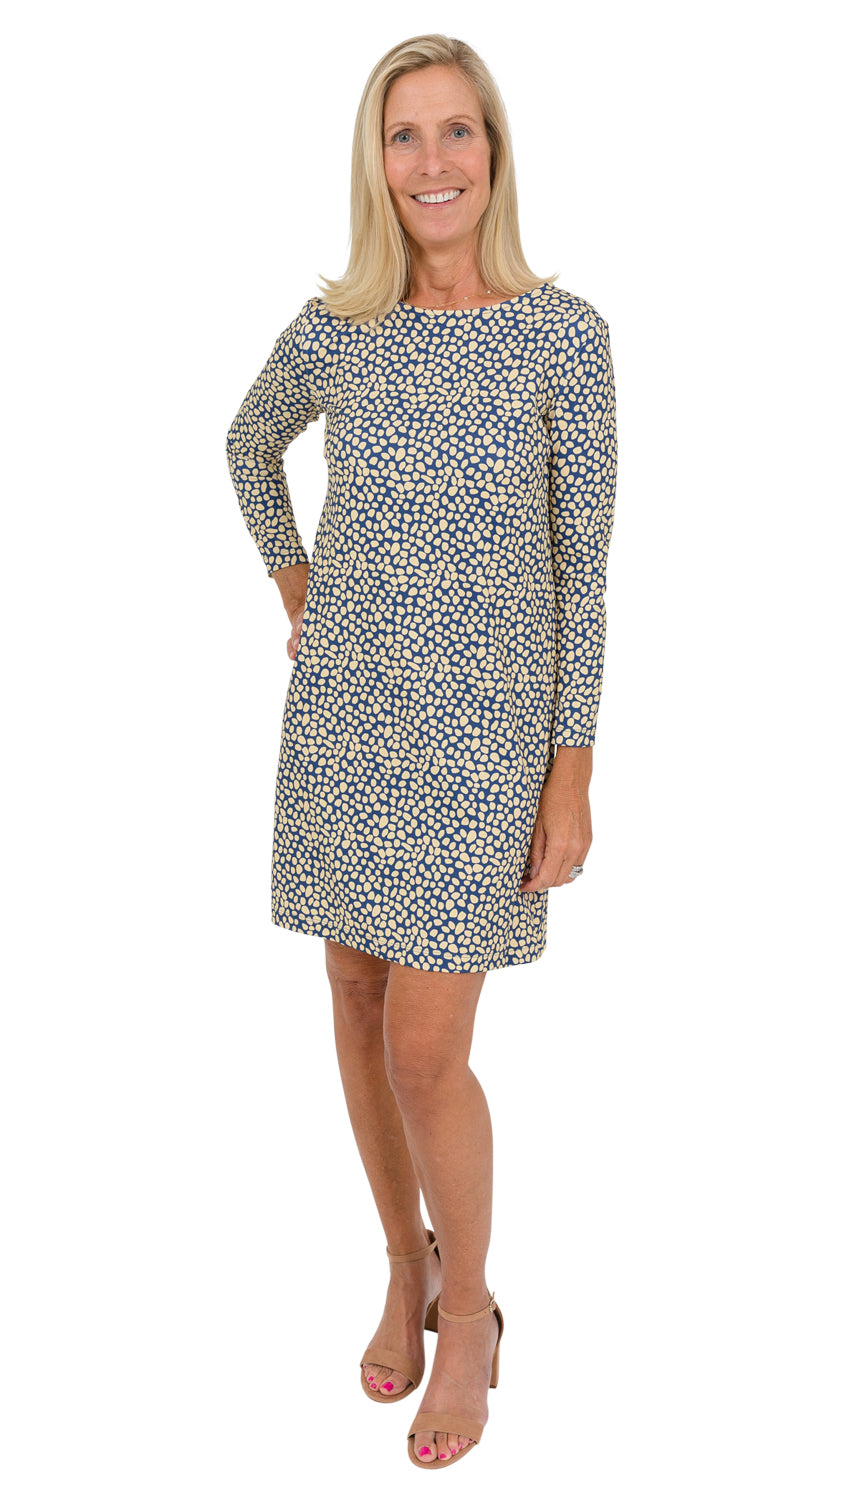 Marina Dress 3/4 Sleeve - Navy/Biscotti Pebble FINAL SALE